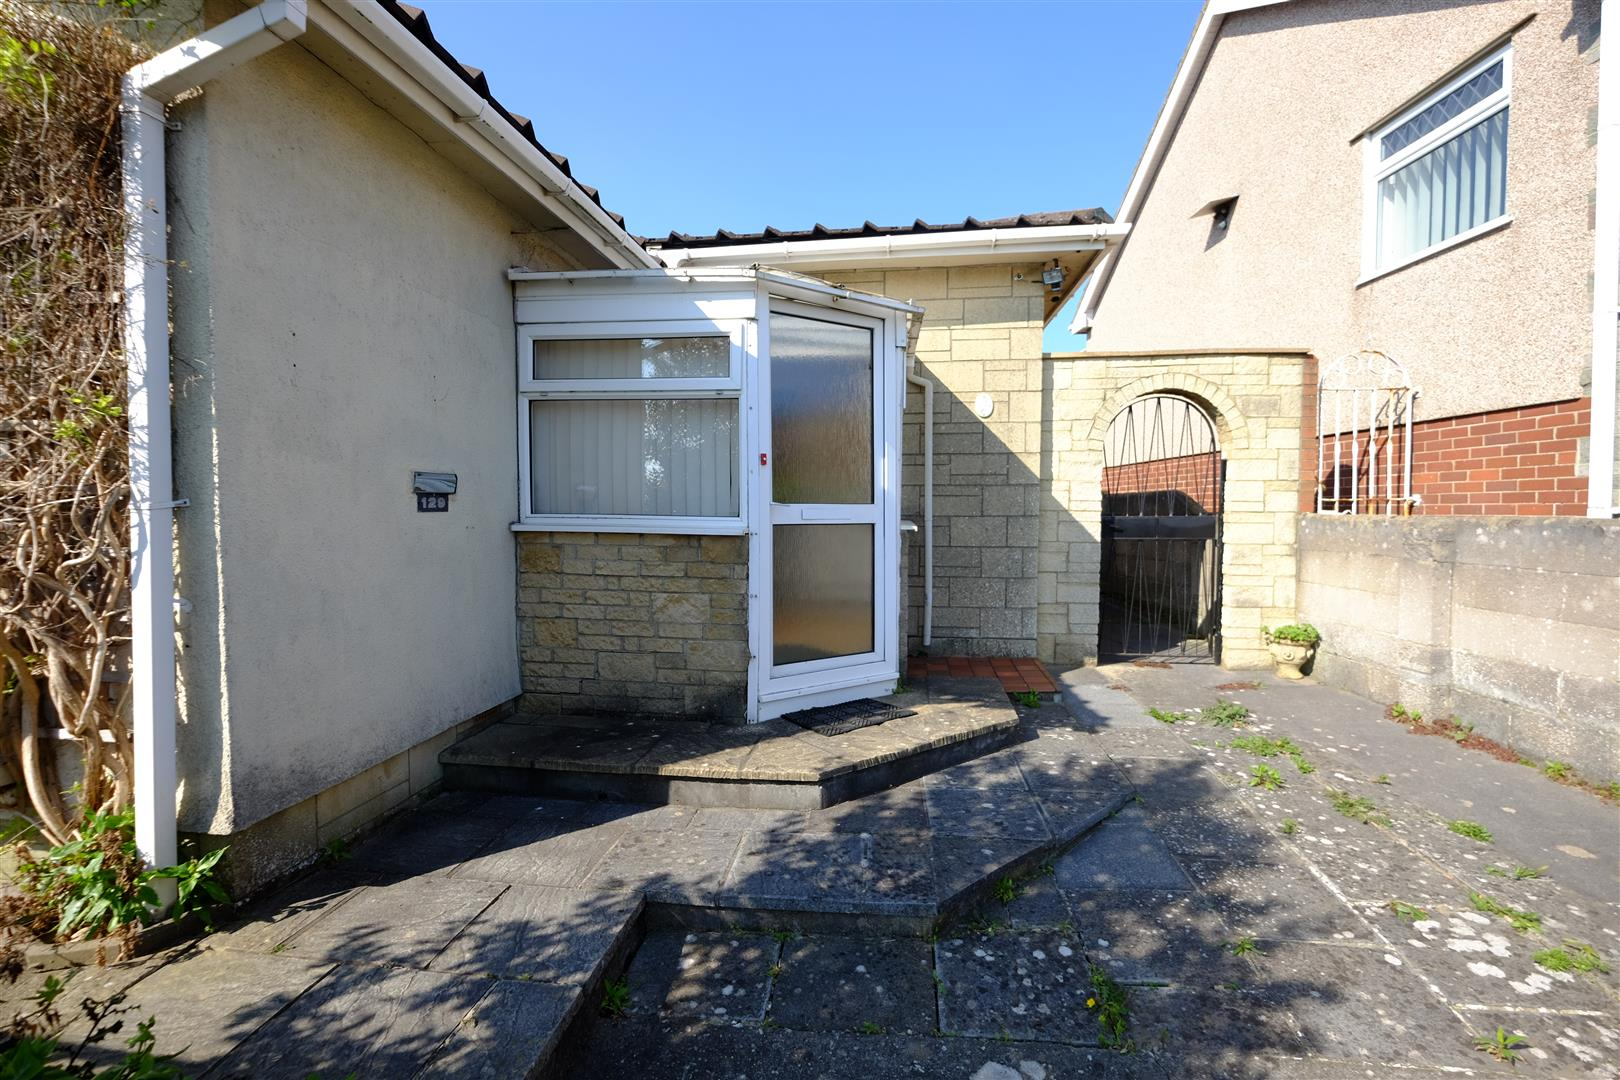 Images for HOUSE FOR UPDATING - BRISLINGTON EAID:hollismoapi BID:11